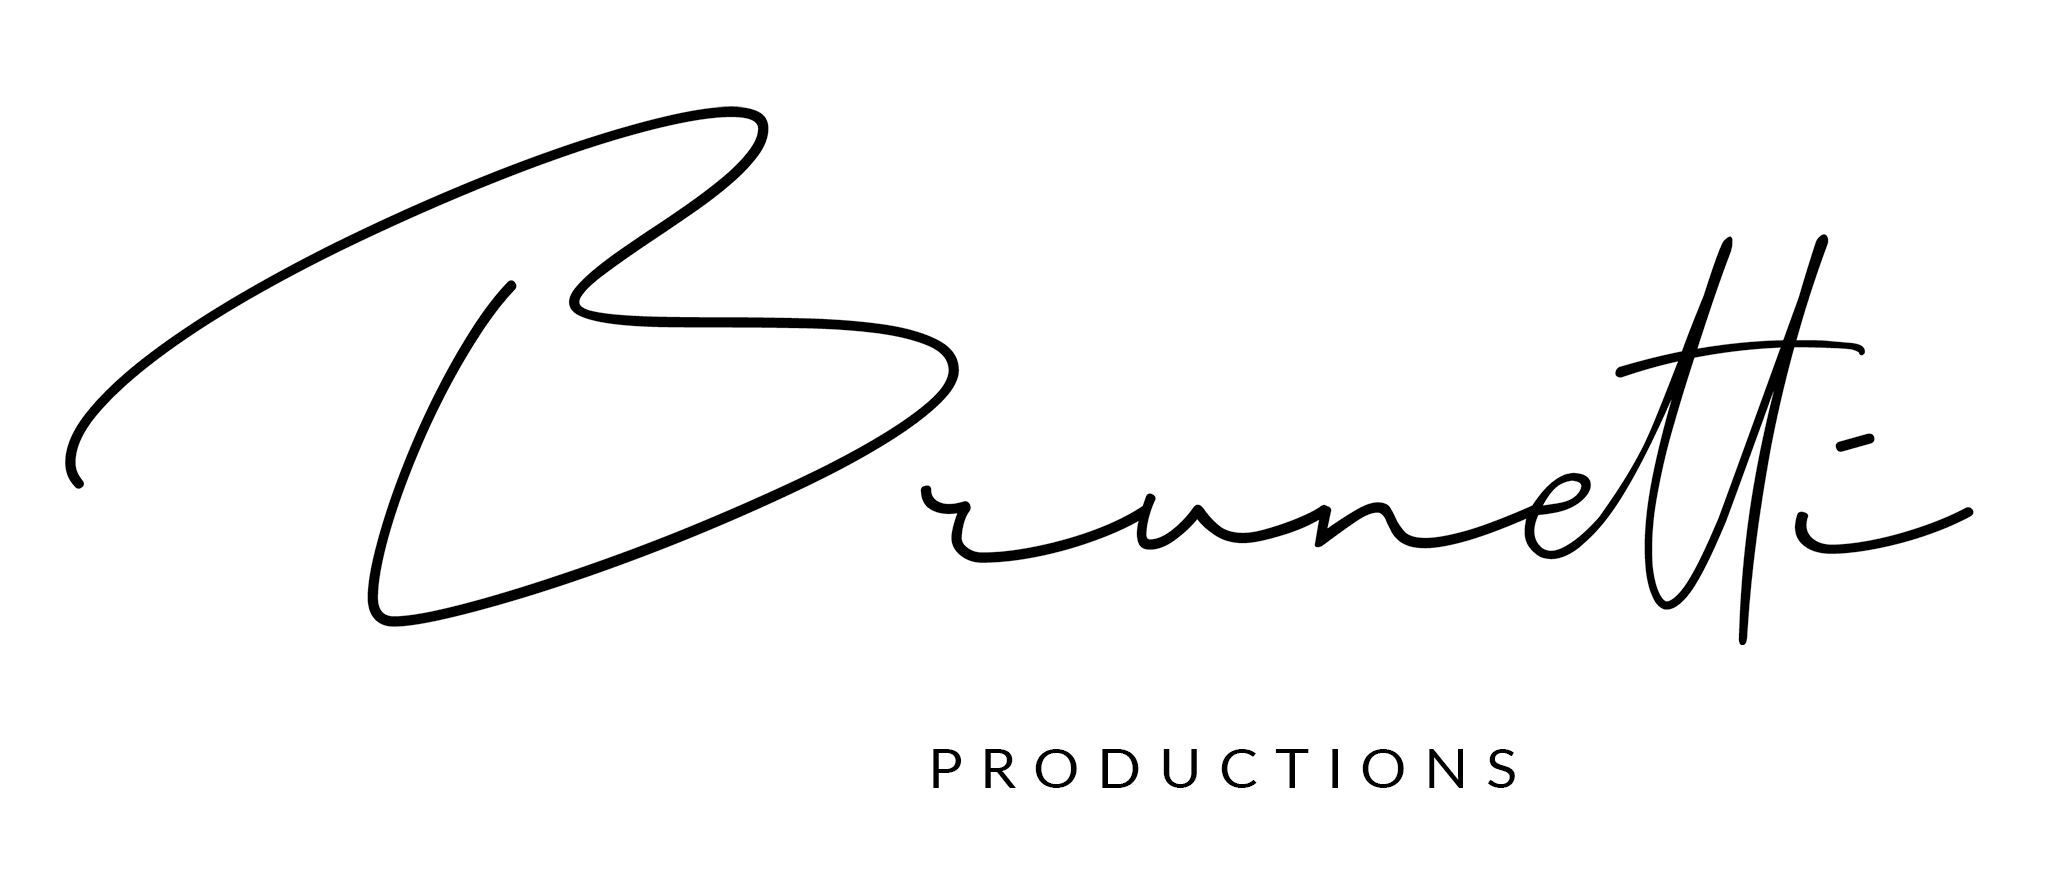 Brunetti Productions